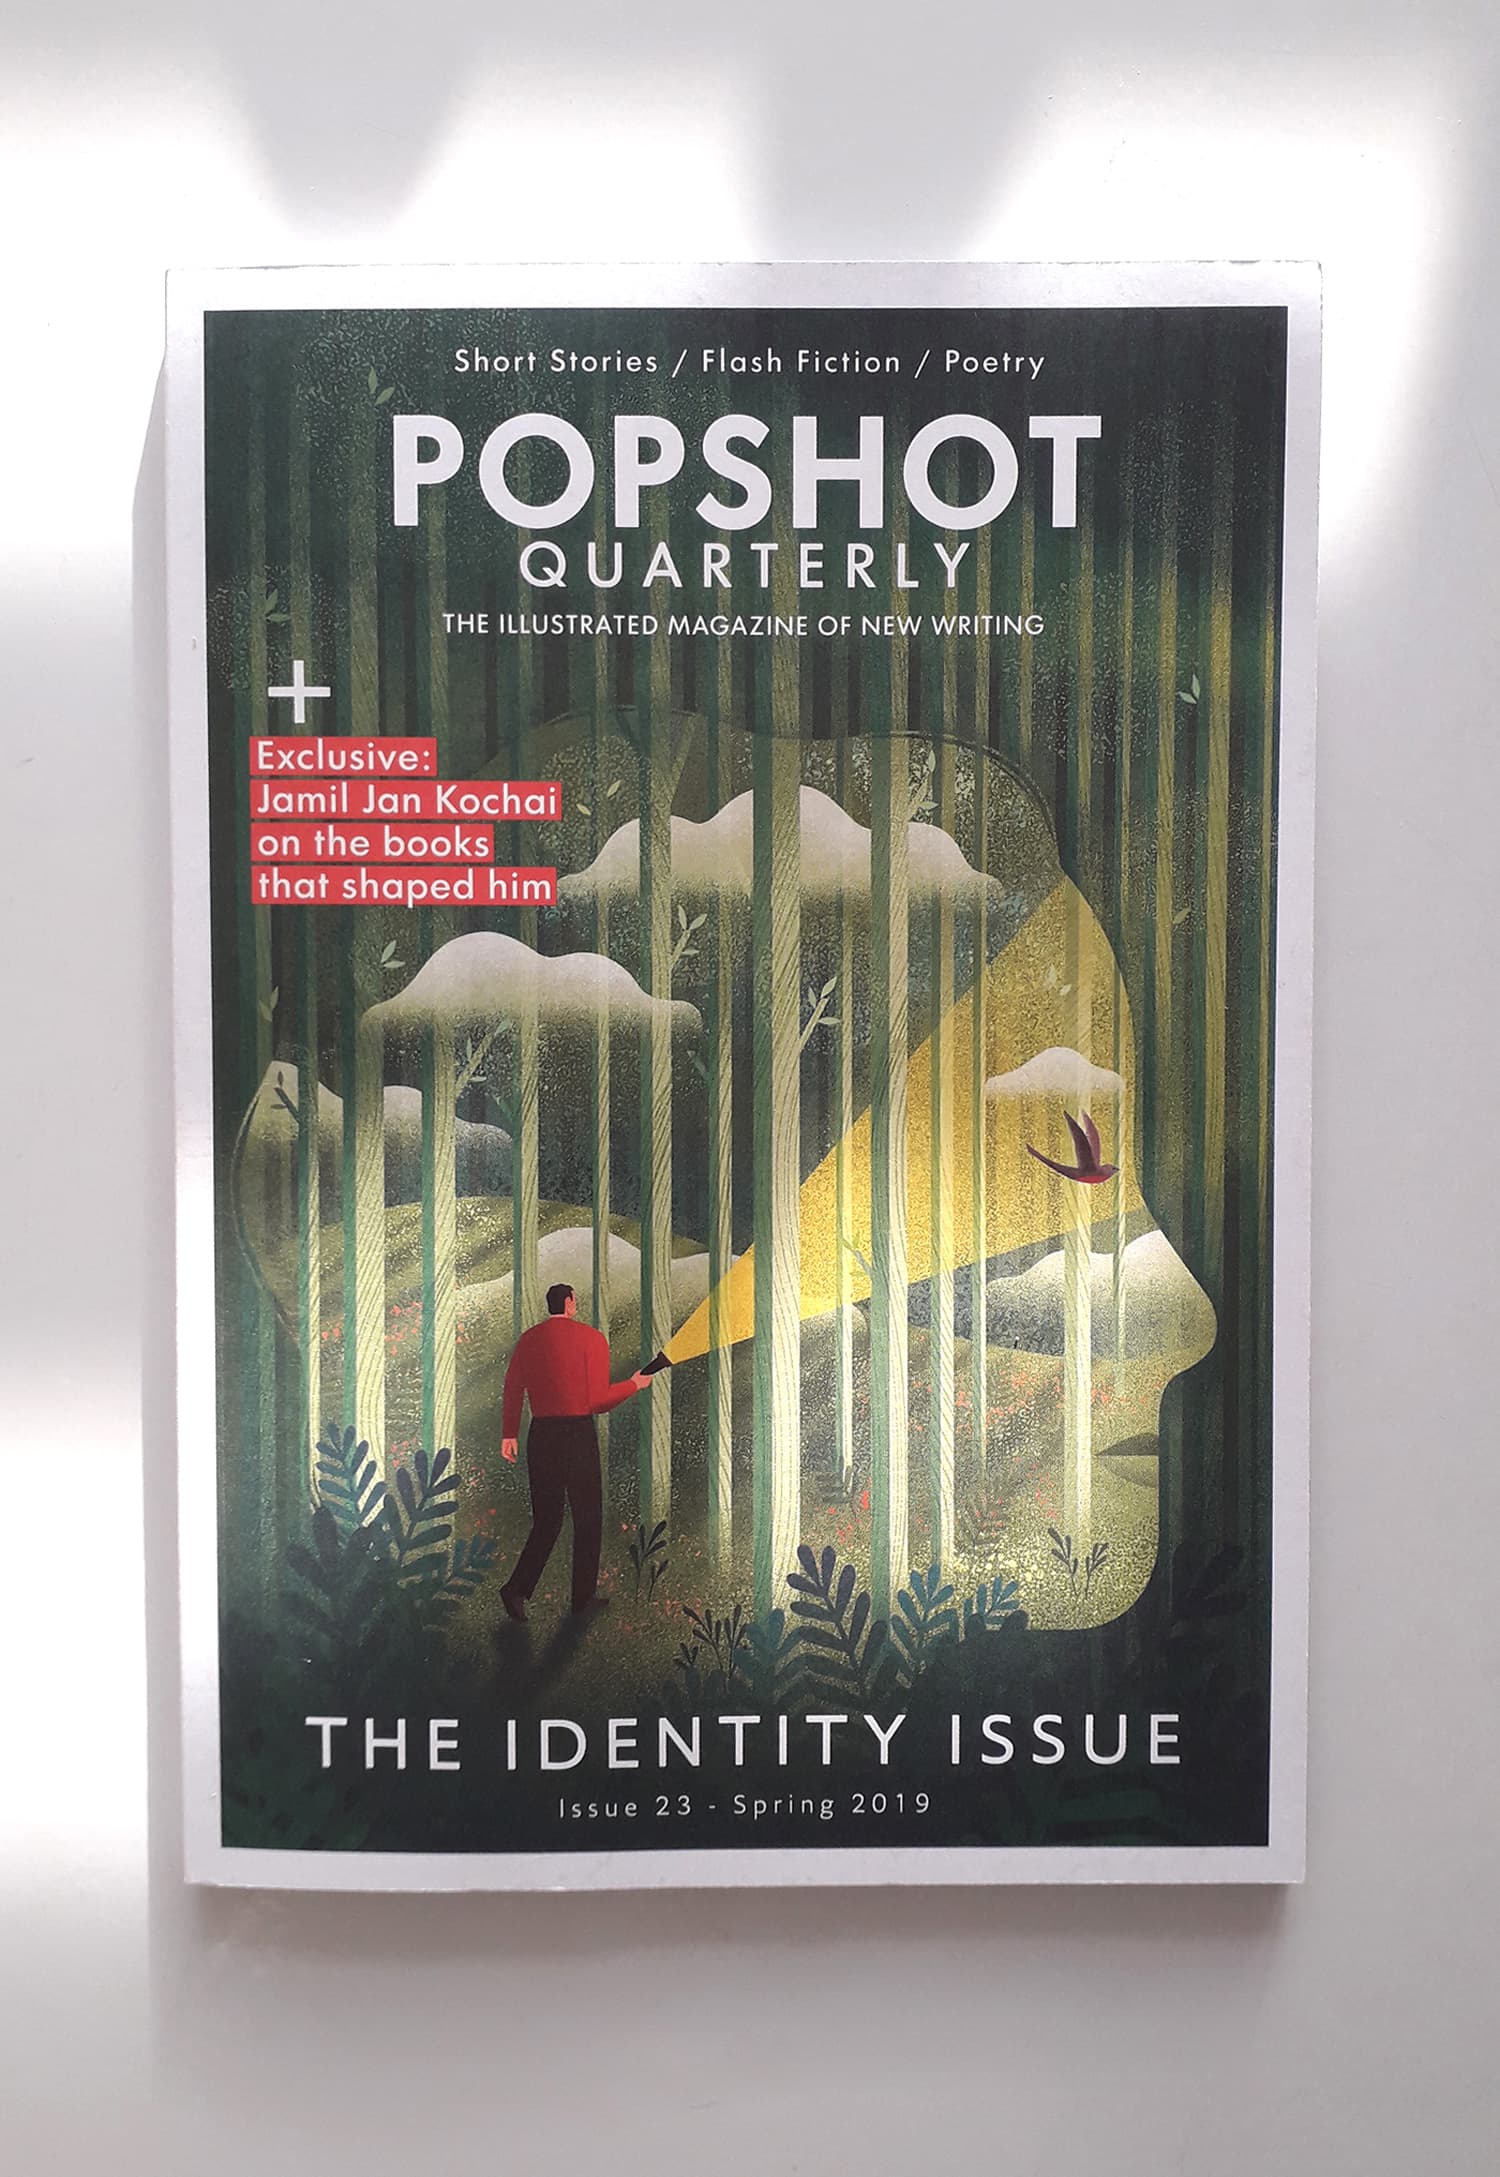 Popshot Magazine - Identity Issue